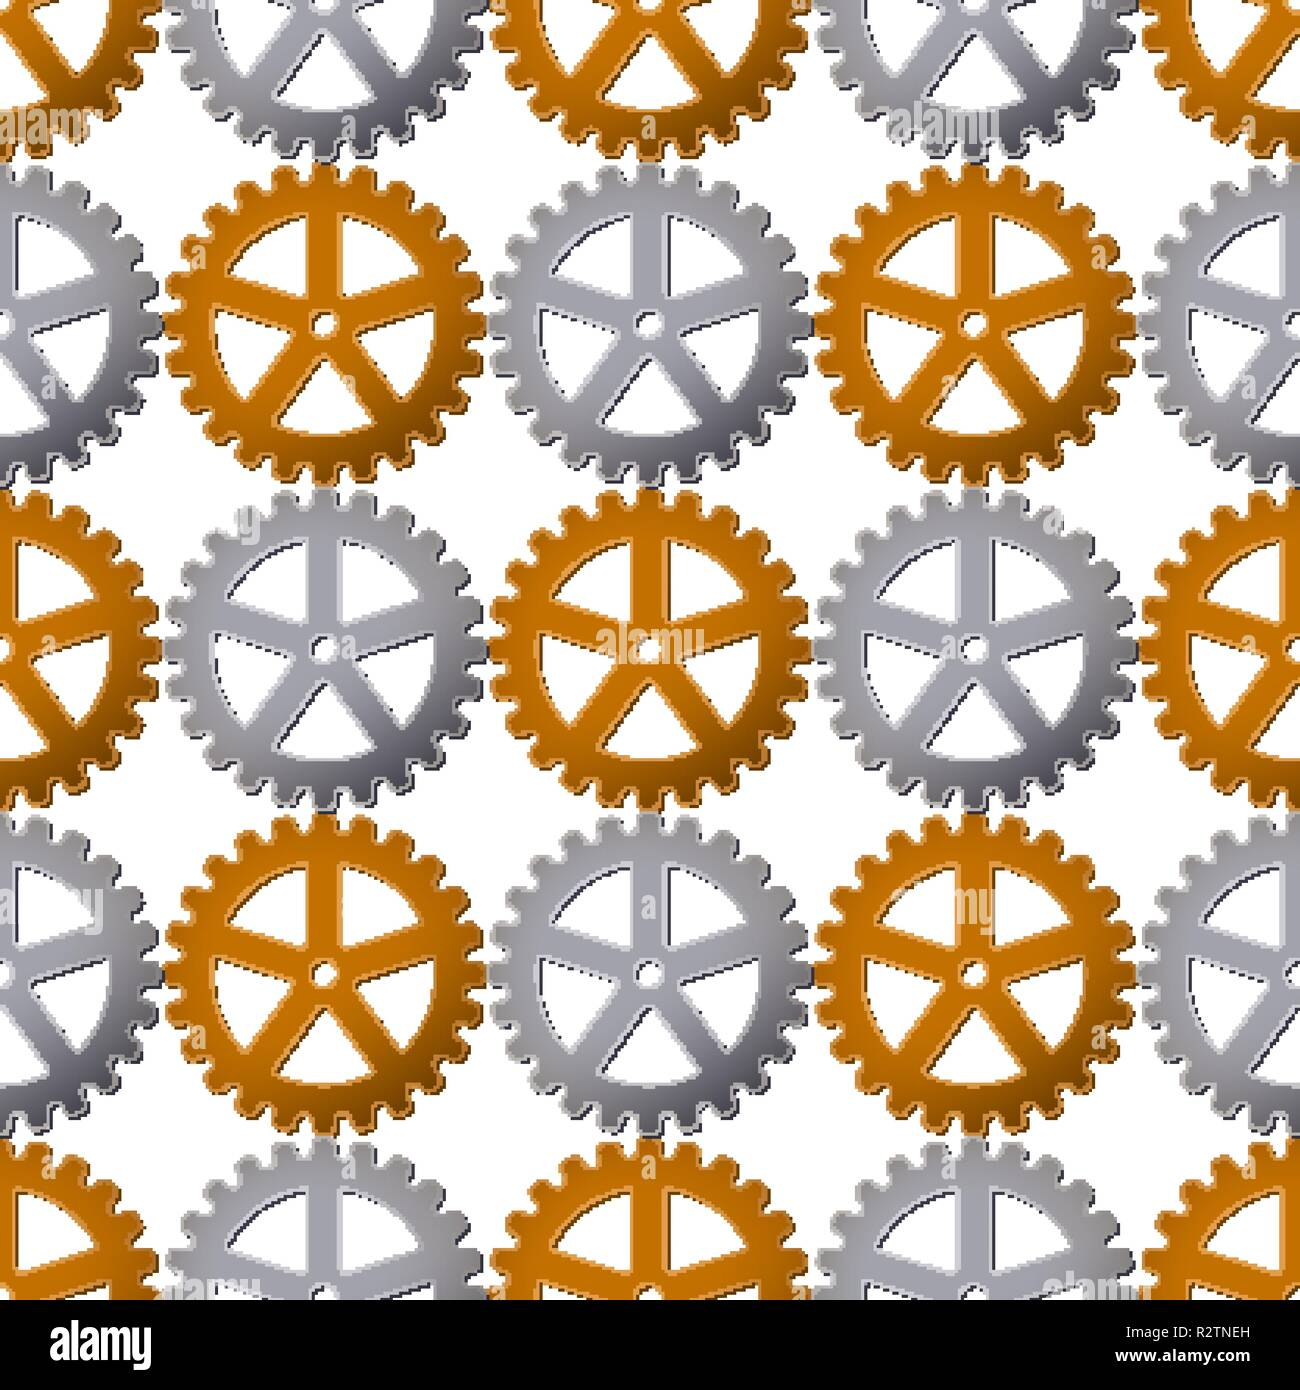 Seamless pattern background with gears. Vector illustration. Clockwork design. - Stock Vector